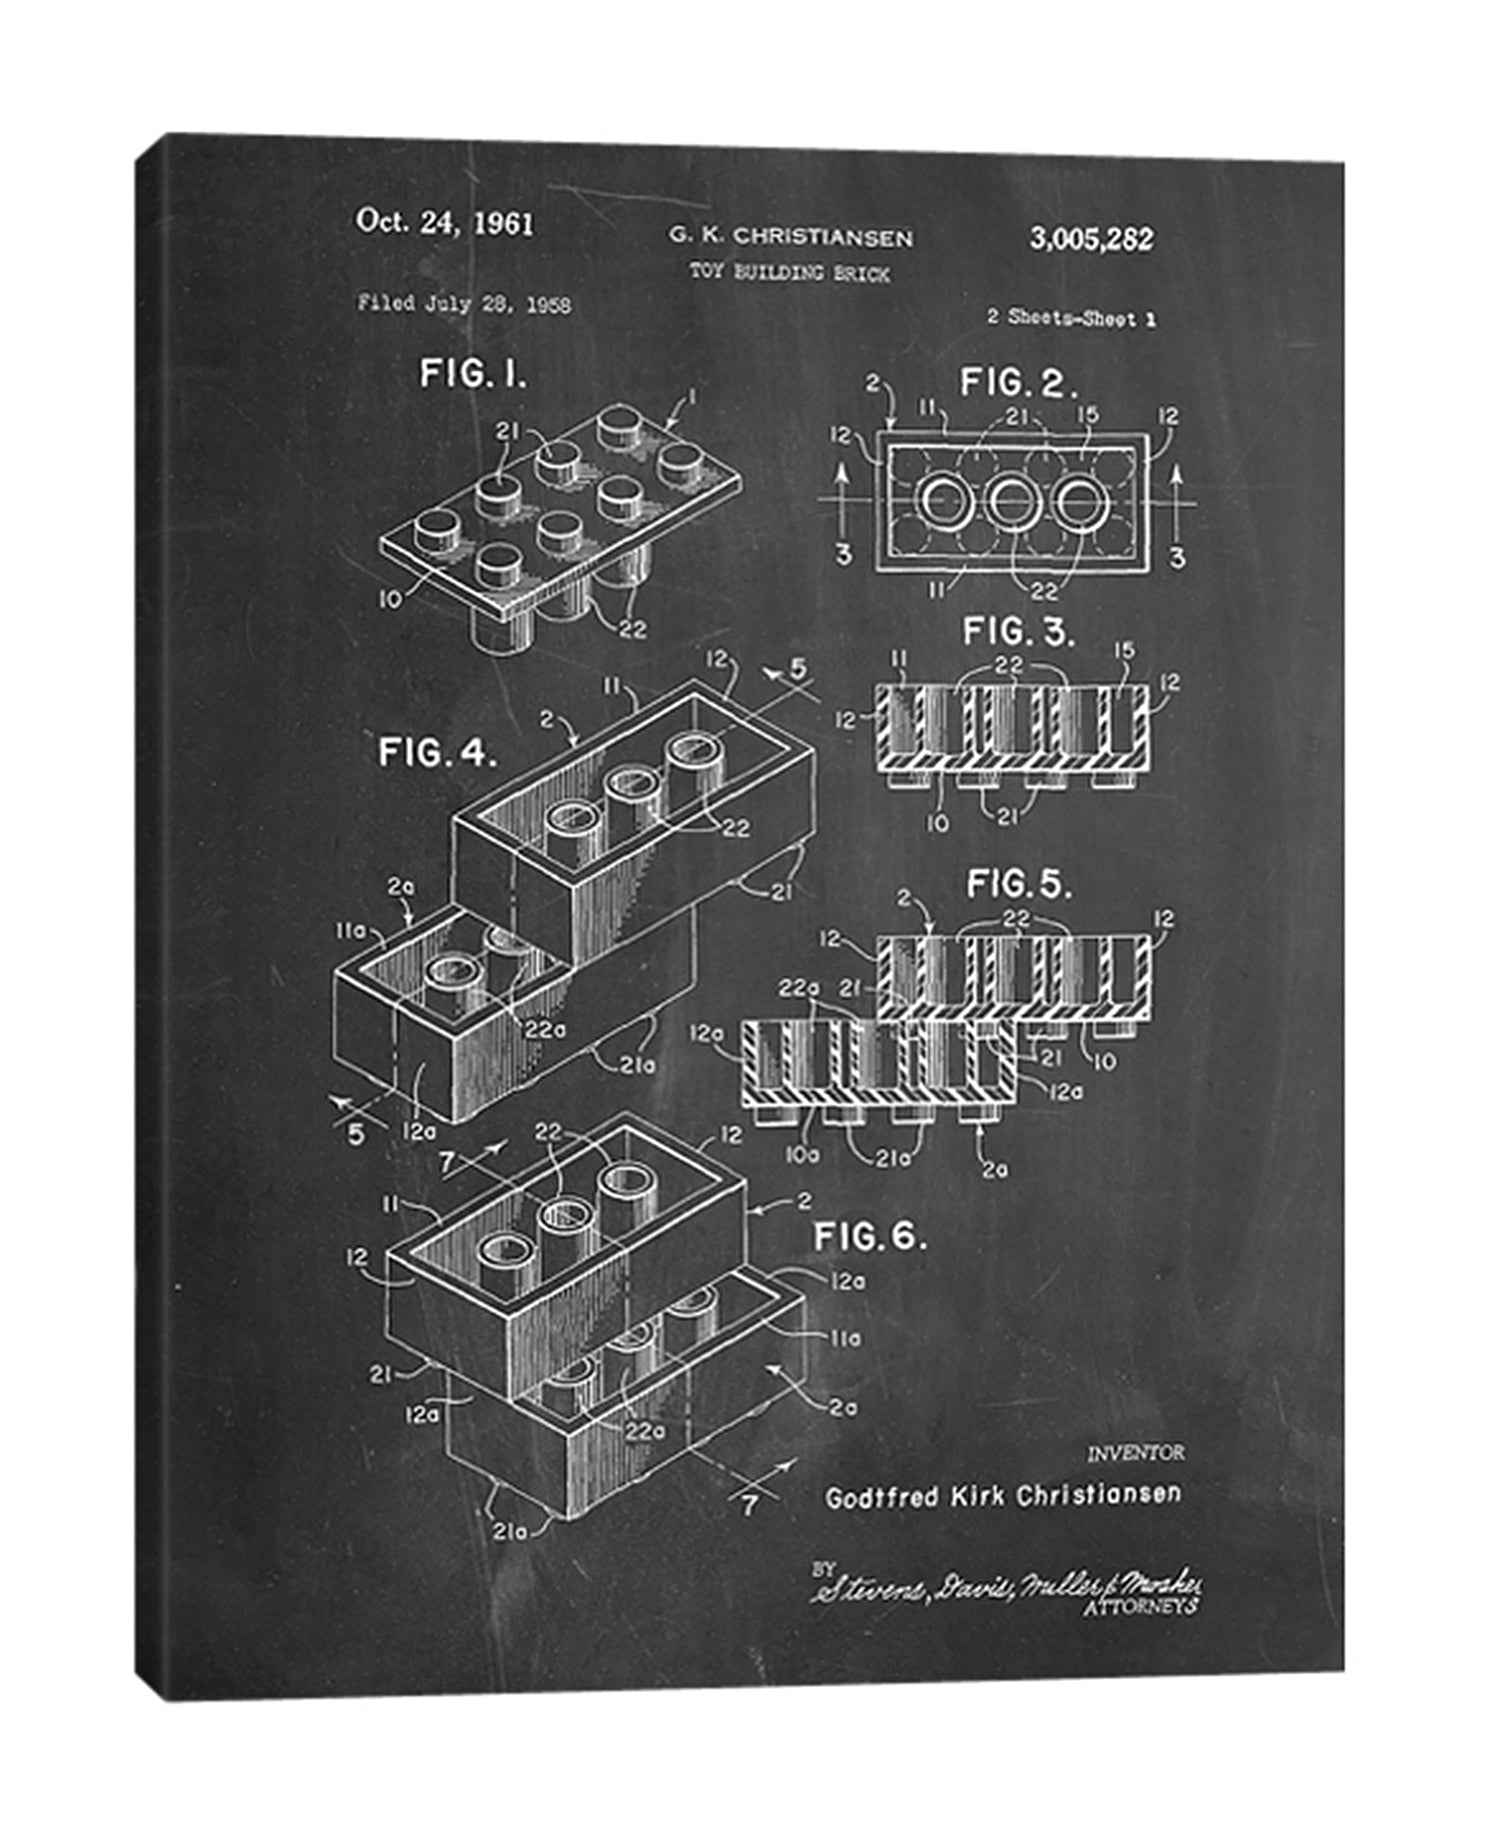 Cole-Borders,Modern & Contemporary,Entertainment,toy brick,bricks,toy building bricks,patented,blueprint,words and phrases,drawing,sketches,Teal Blue,Charcoal Gray,Gray,Army Green,White,Black